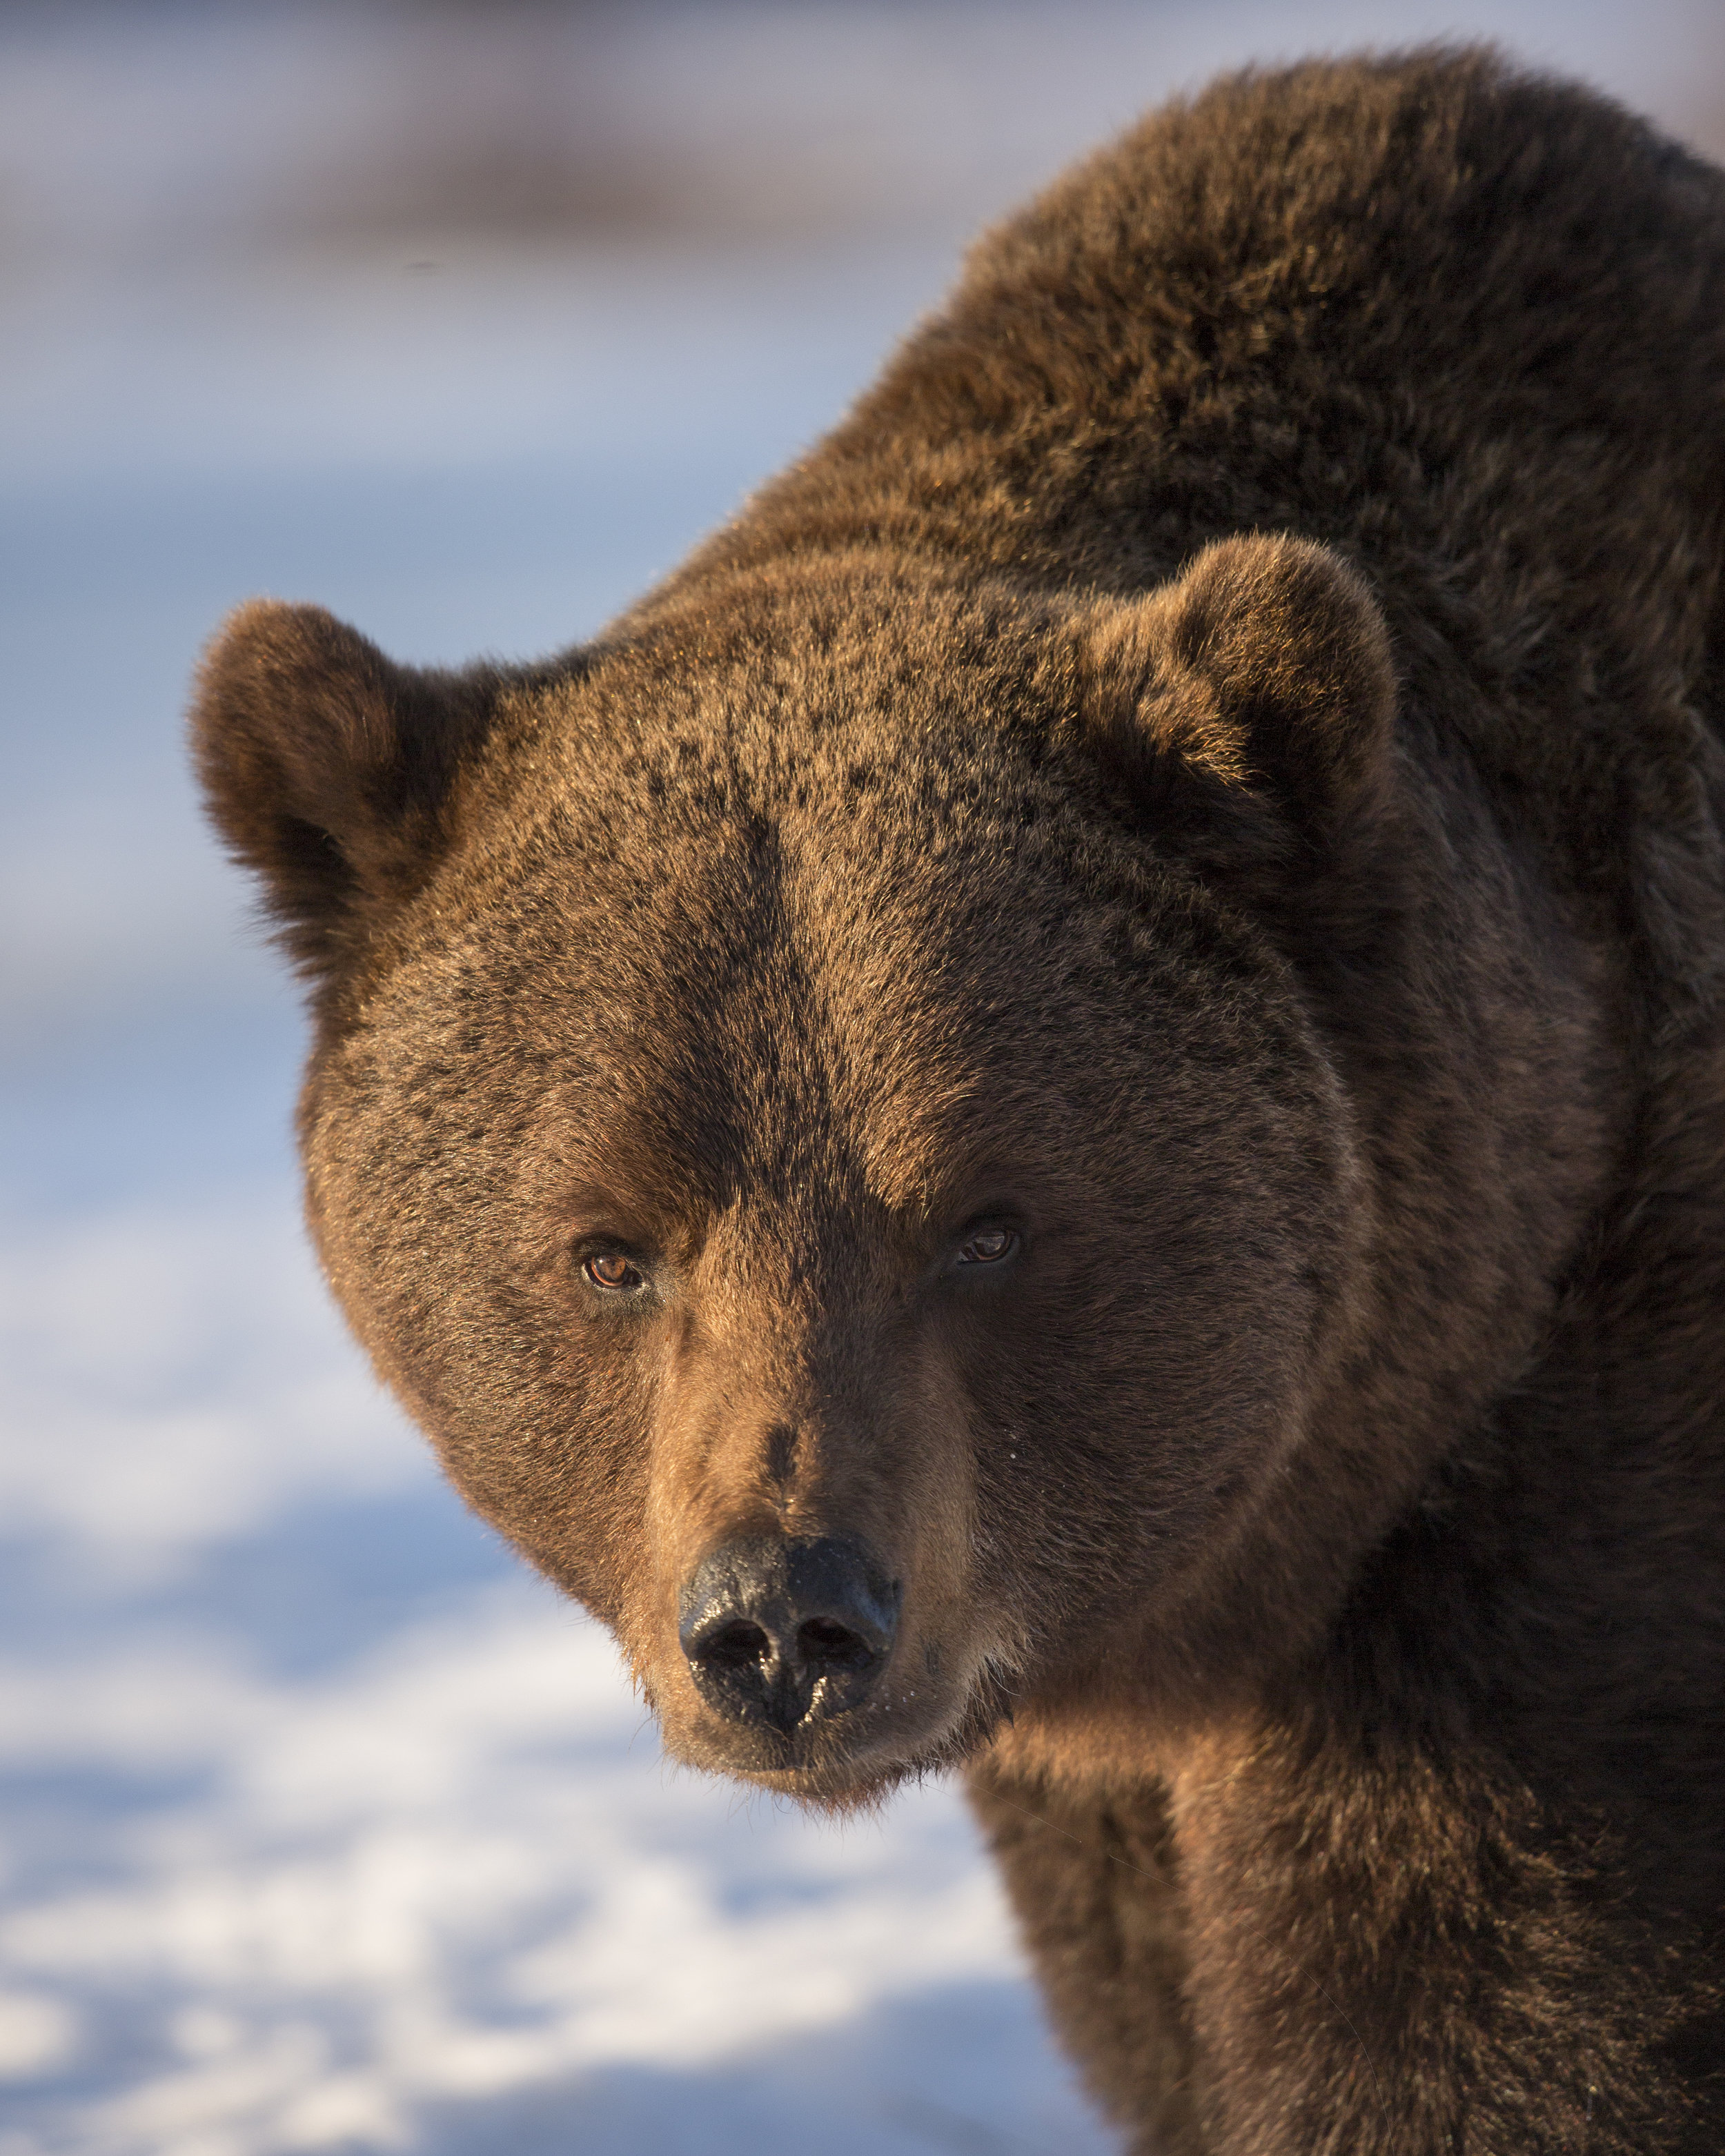 Evening light catches the side of this male Bears face.